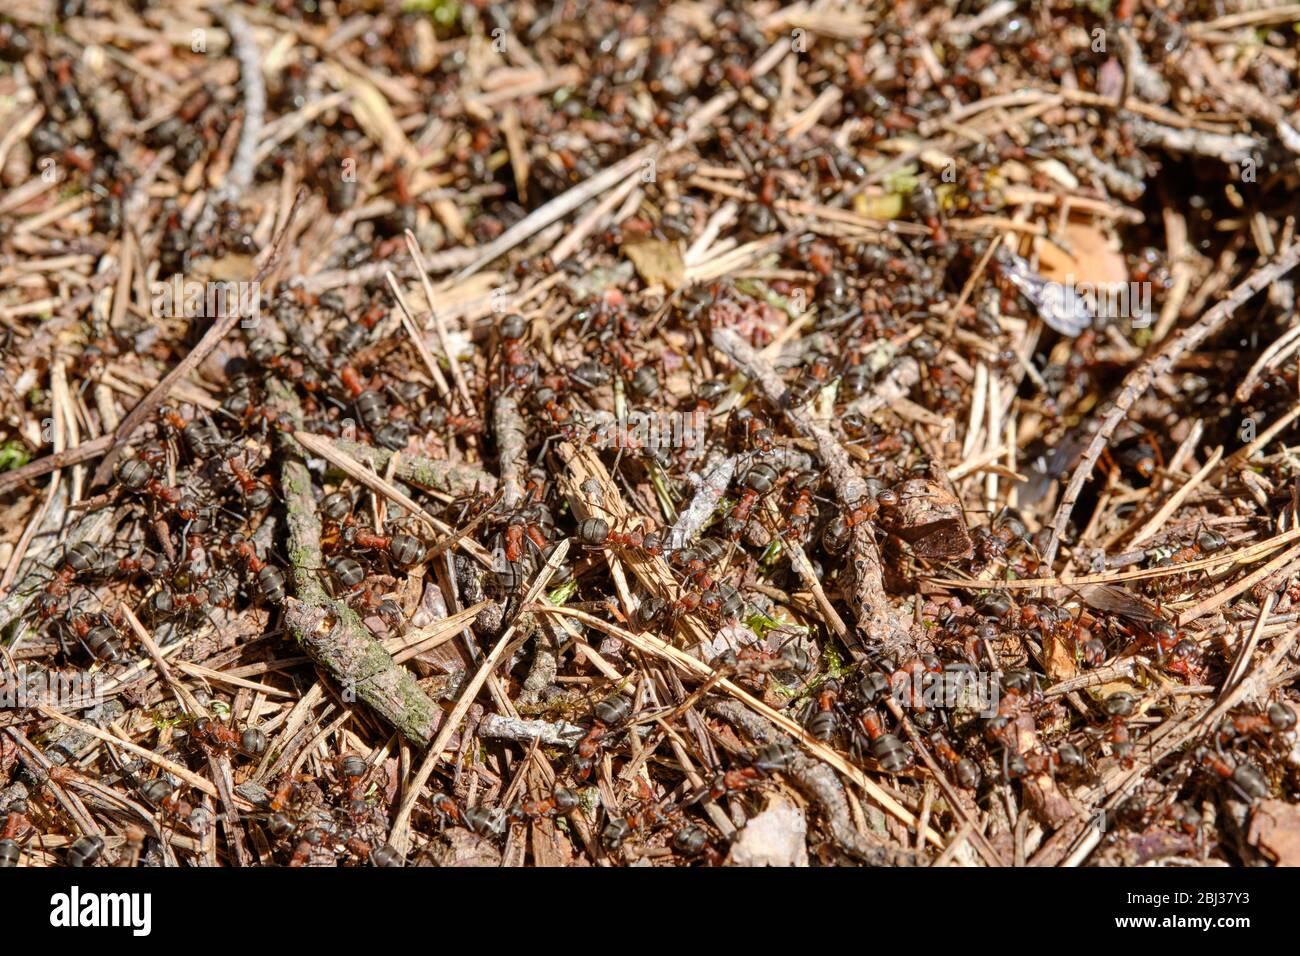 Closeup of an anthill in the forest with many red wood ants crawling on it. Seen on a sunny springtime day in the forest in Bavaria, Germany Stock Photo